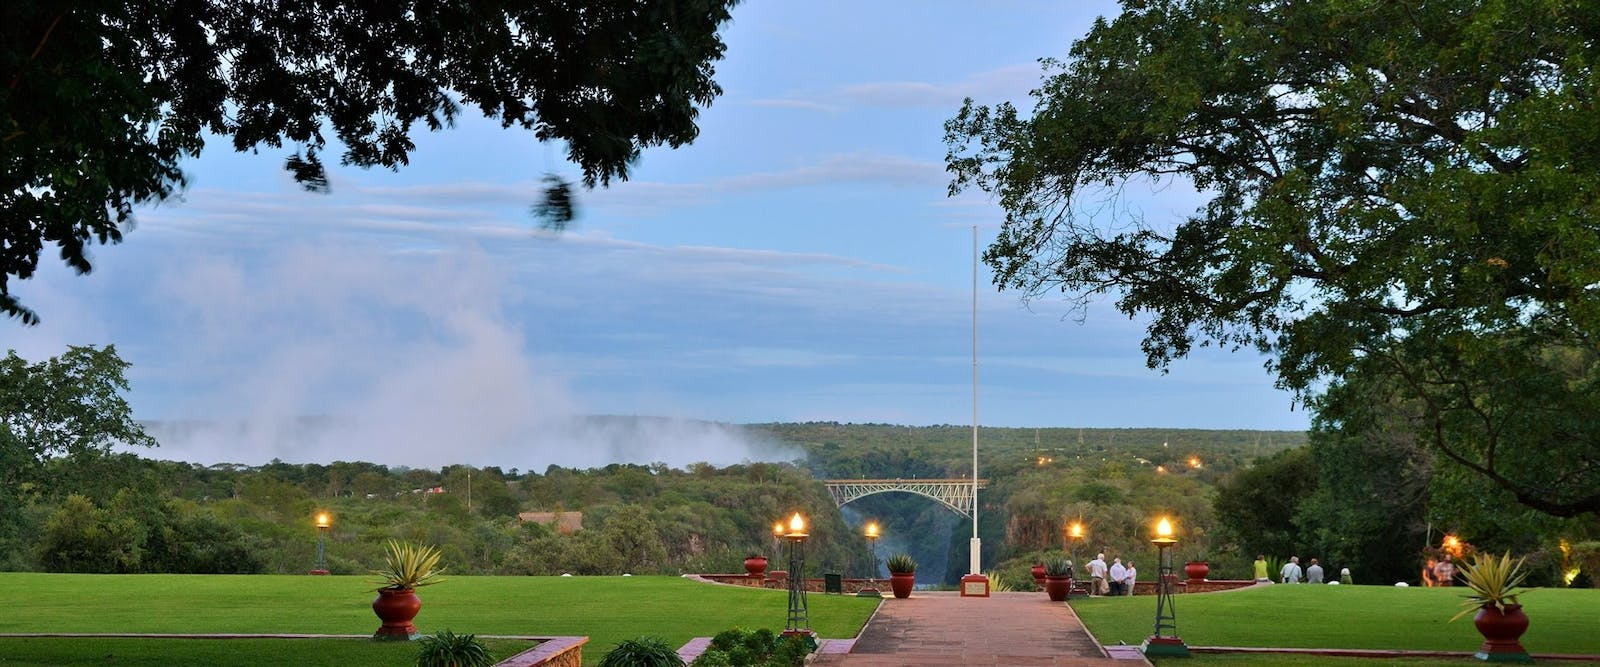 Landscape view of grounds at Victoria Falls Hotel, Zimbabwe